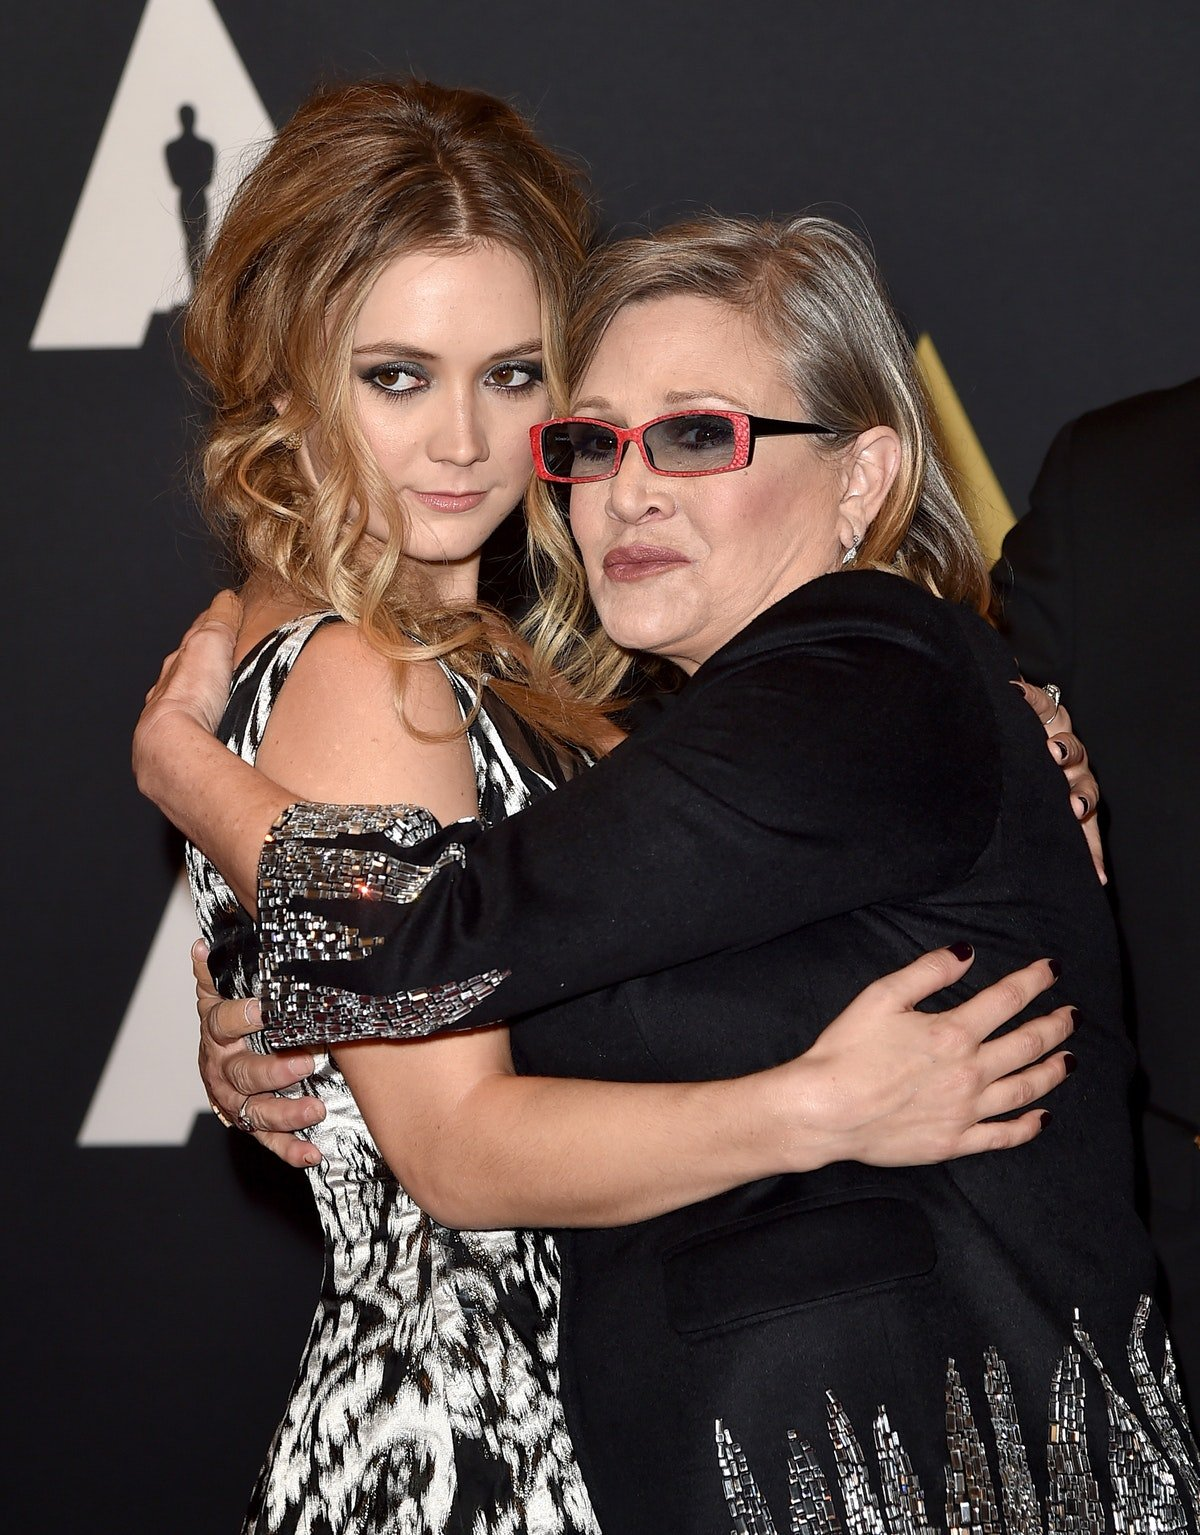 Billie Lourd's Latest Tribute To Carrie Fisher Will Give 'Star Wars' Fans So Many Feels